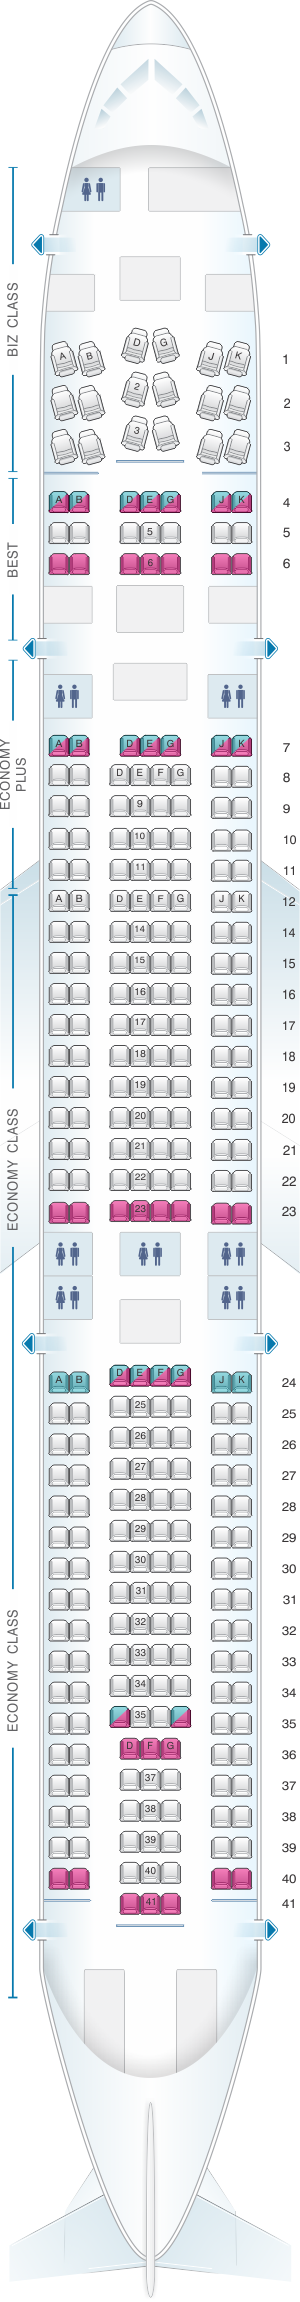 Seat map for Eurowings Airbus A340 300